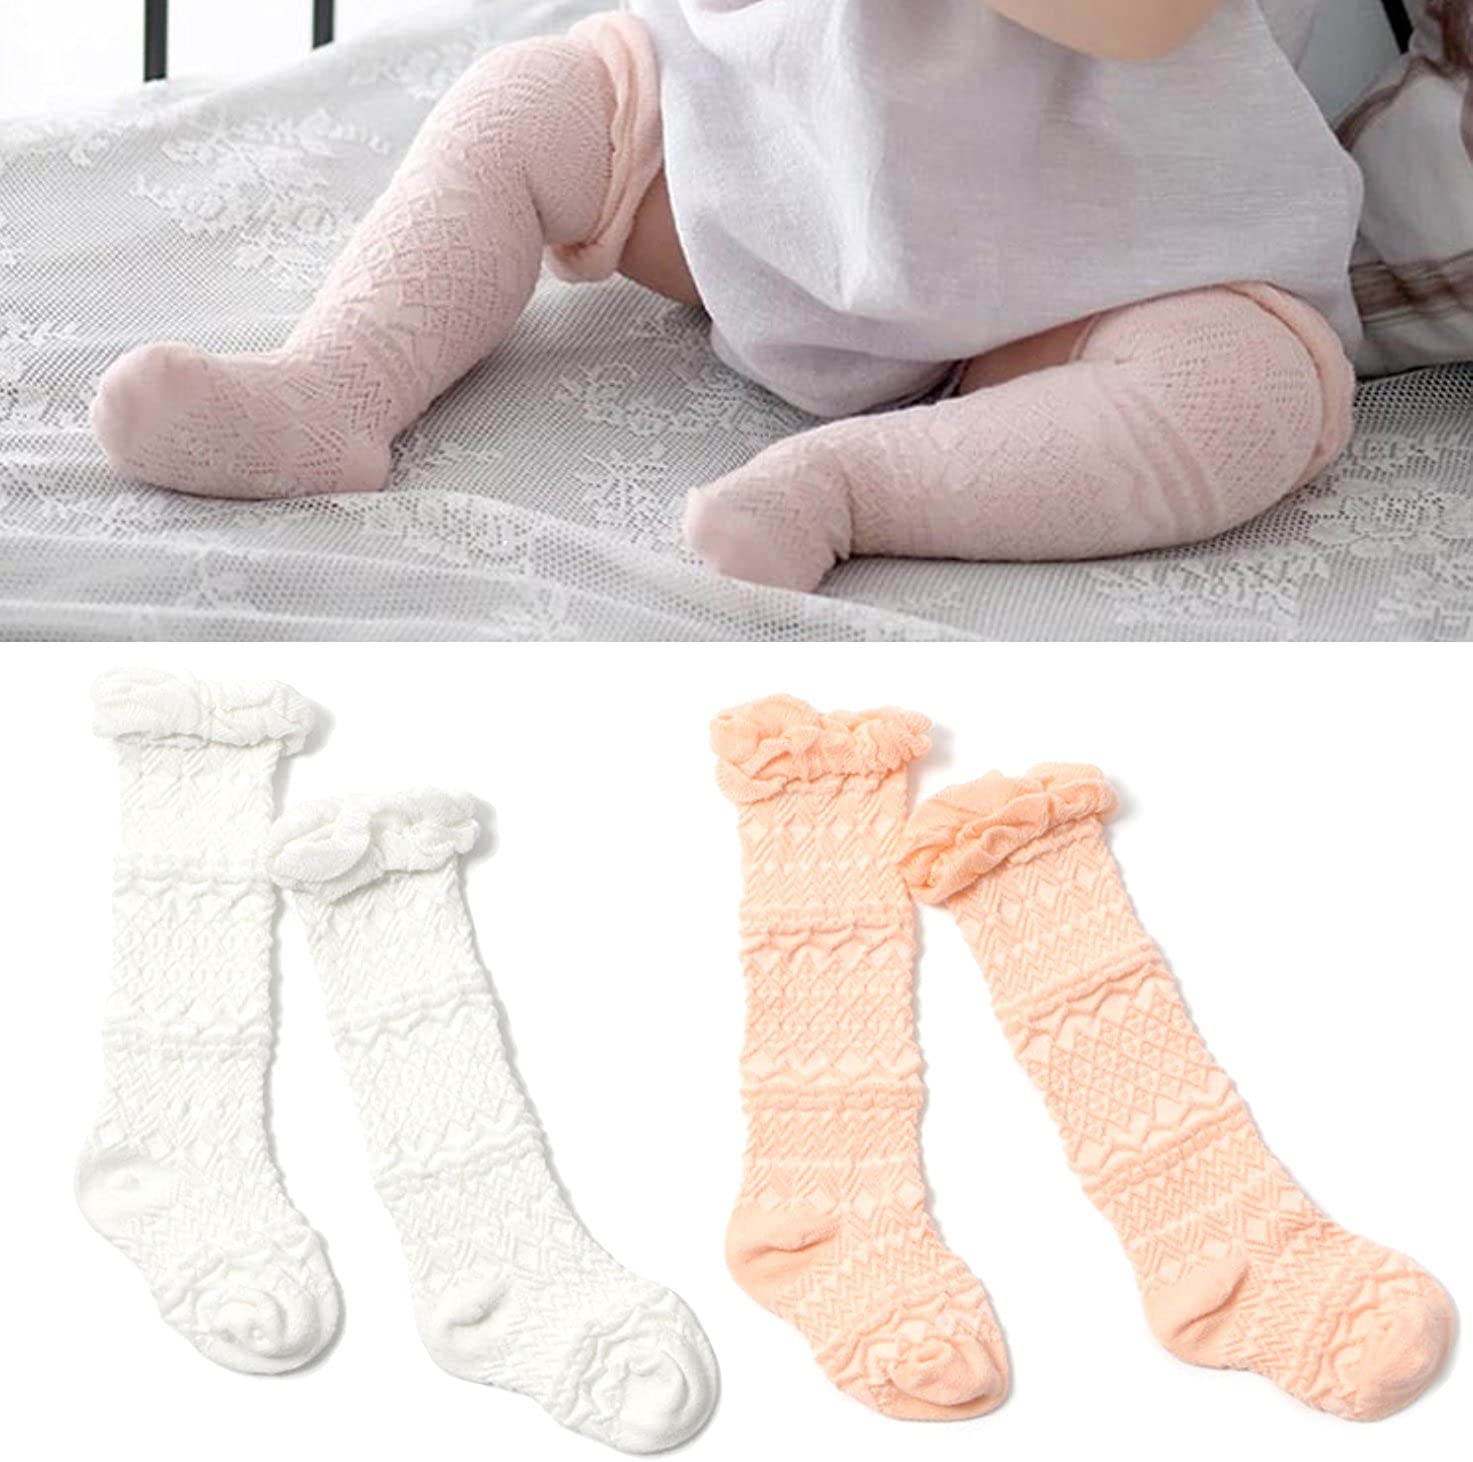 Elesa Miracle 2pc Cozy Soft Toddler Baby Leg Warmers Knee High Stocking Baby Summer Socks Baby Tube Socks